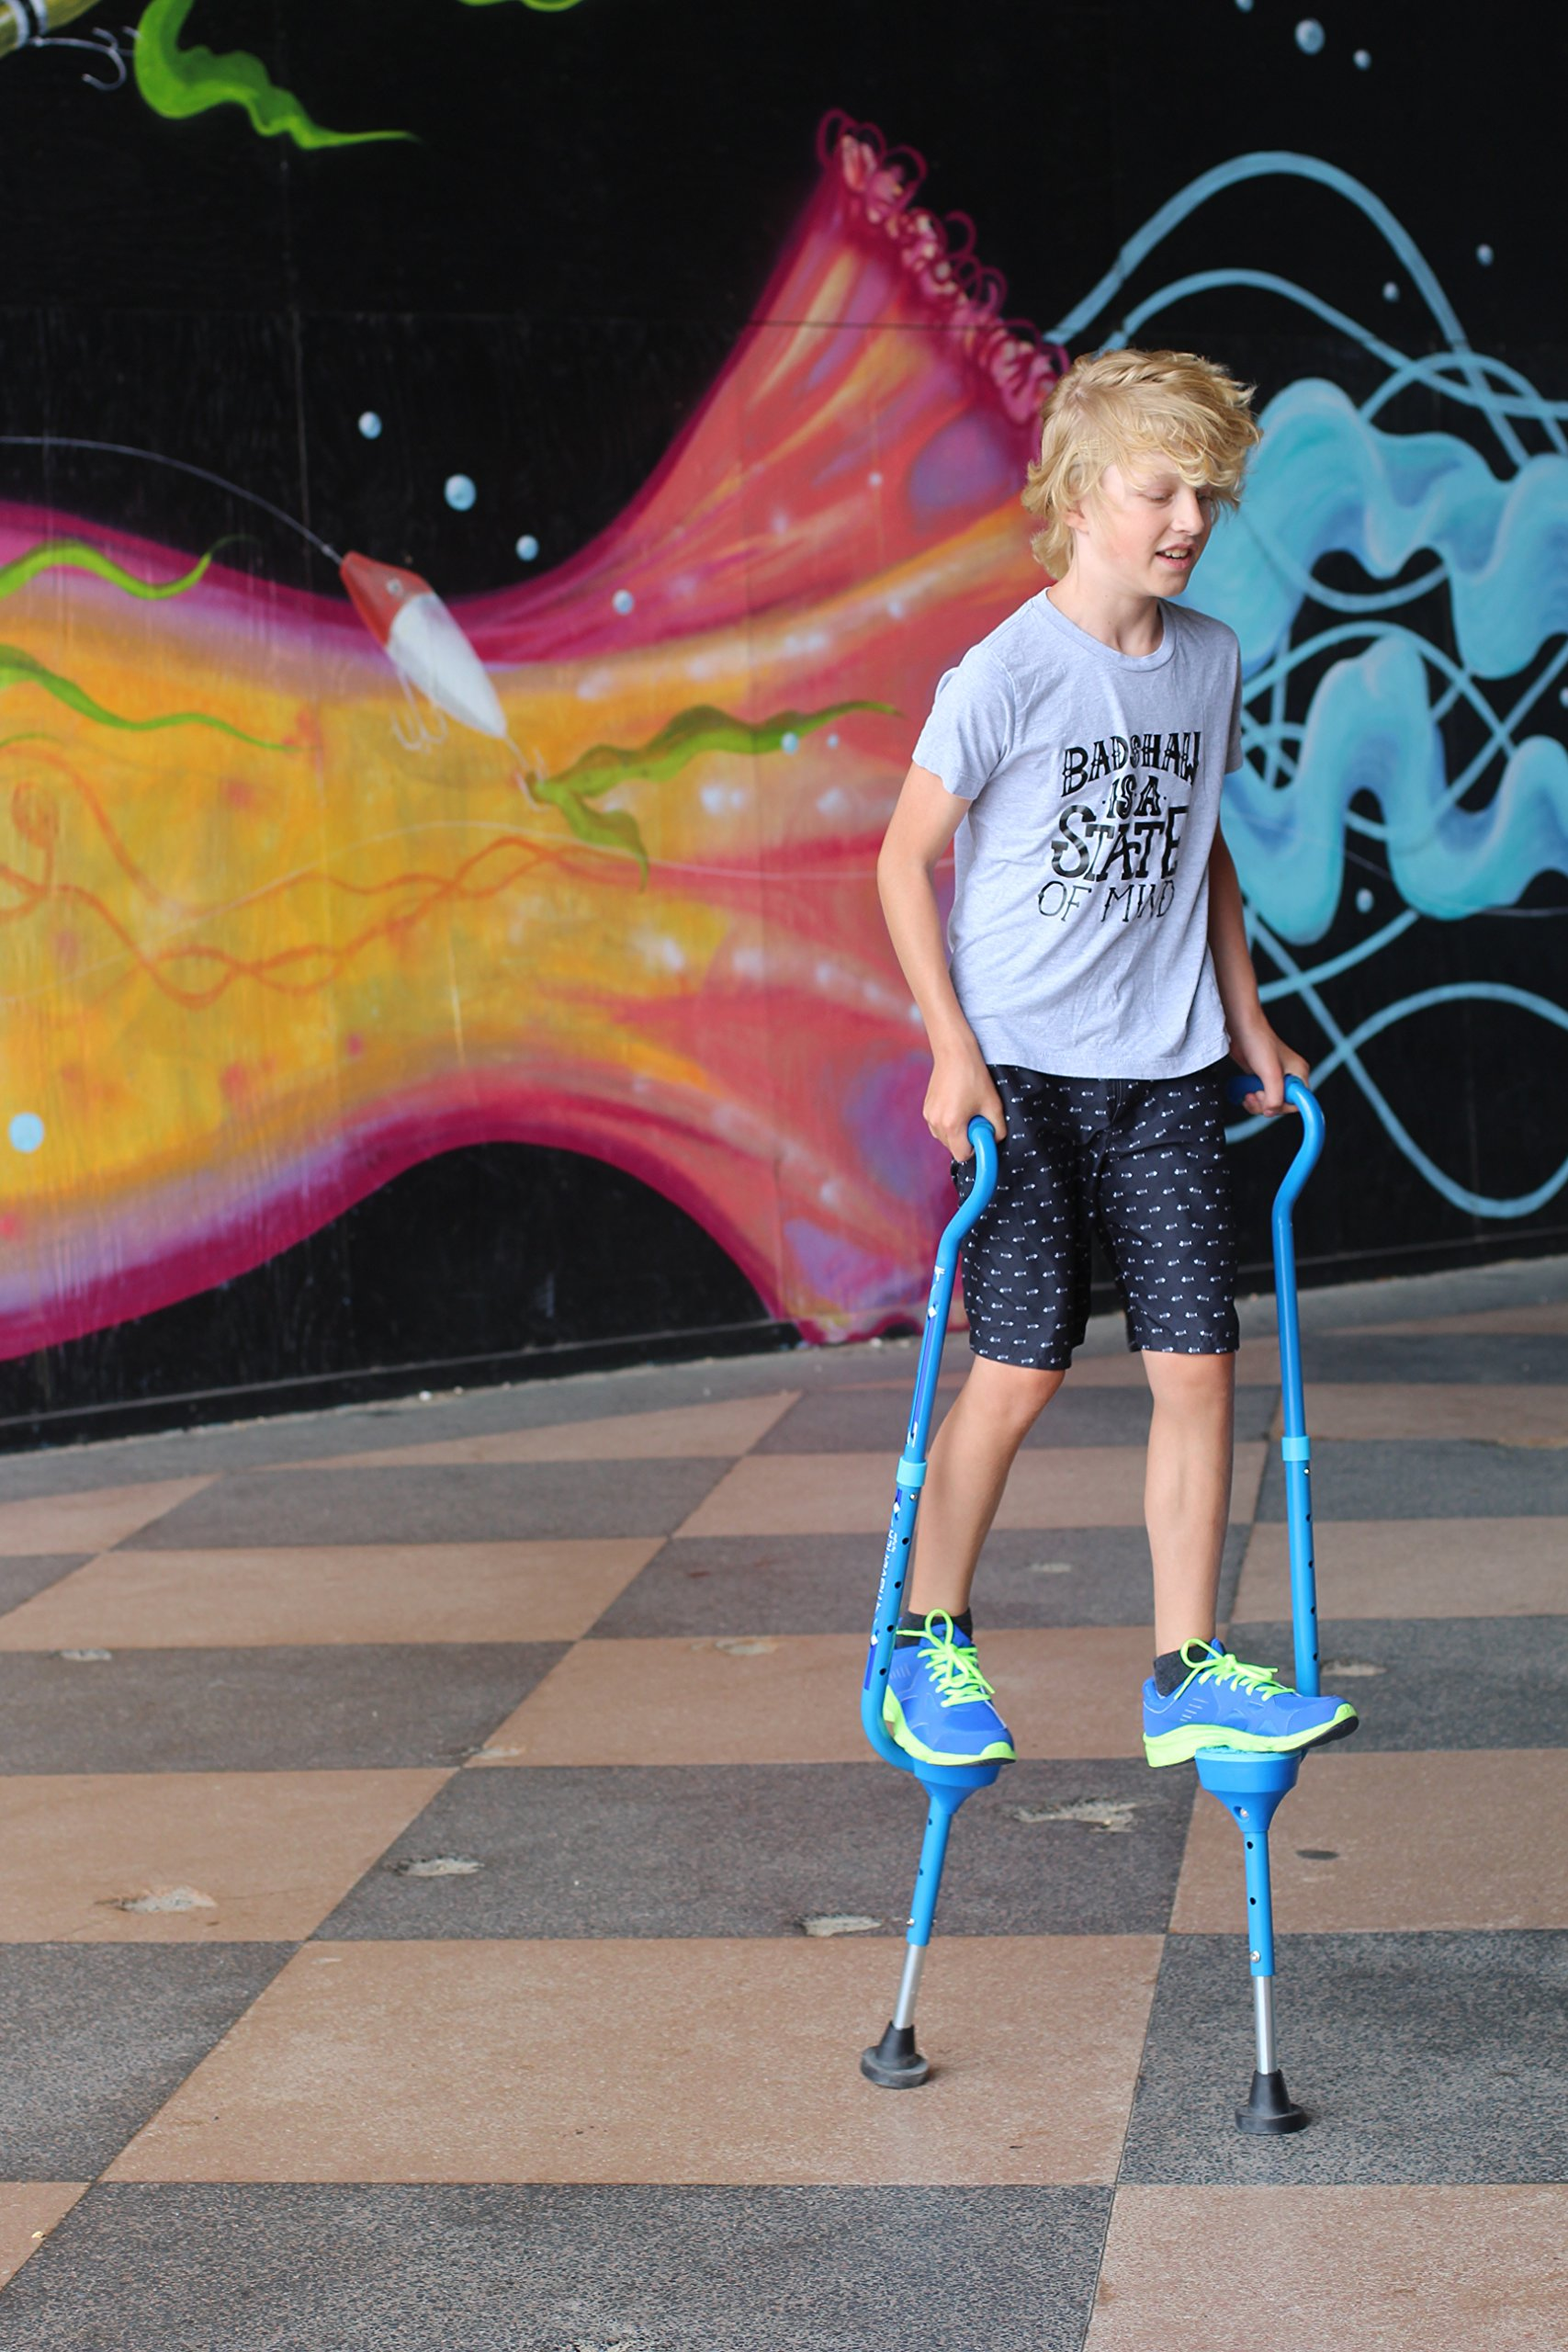 Flybar Maverick Walking Stilts for Kids Ages 5 +, Weights Up to 190 Lbs - Adjustable Foam Handles with Wide Stance Foot Pegs - Fun Outdoor Toys for Girls & Boys by Flybar (Image #6)